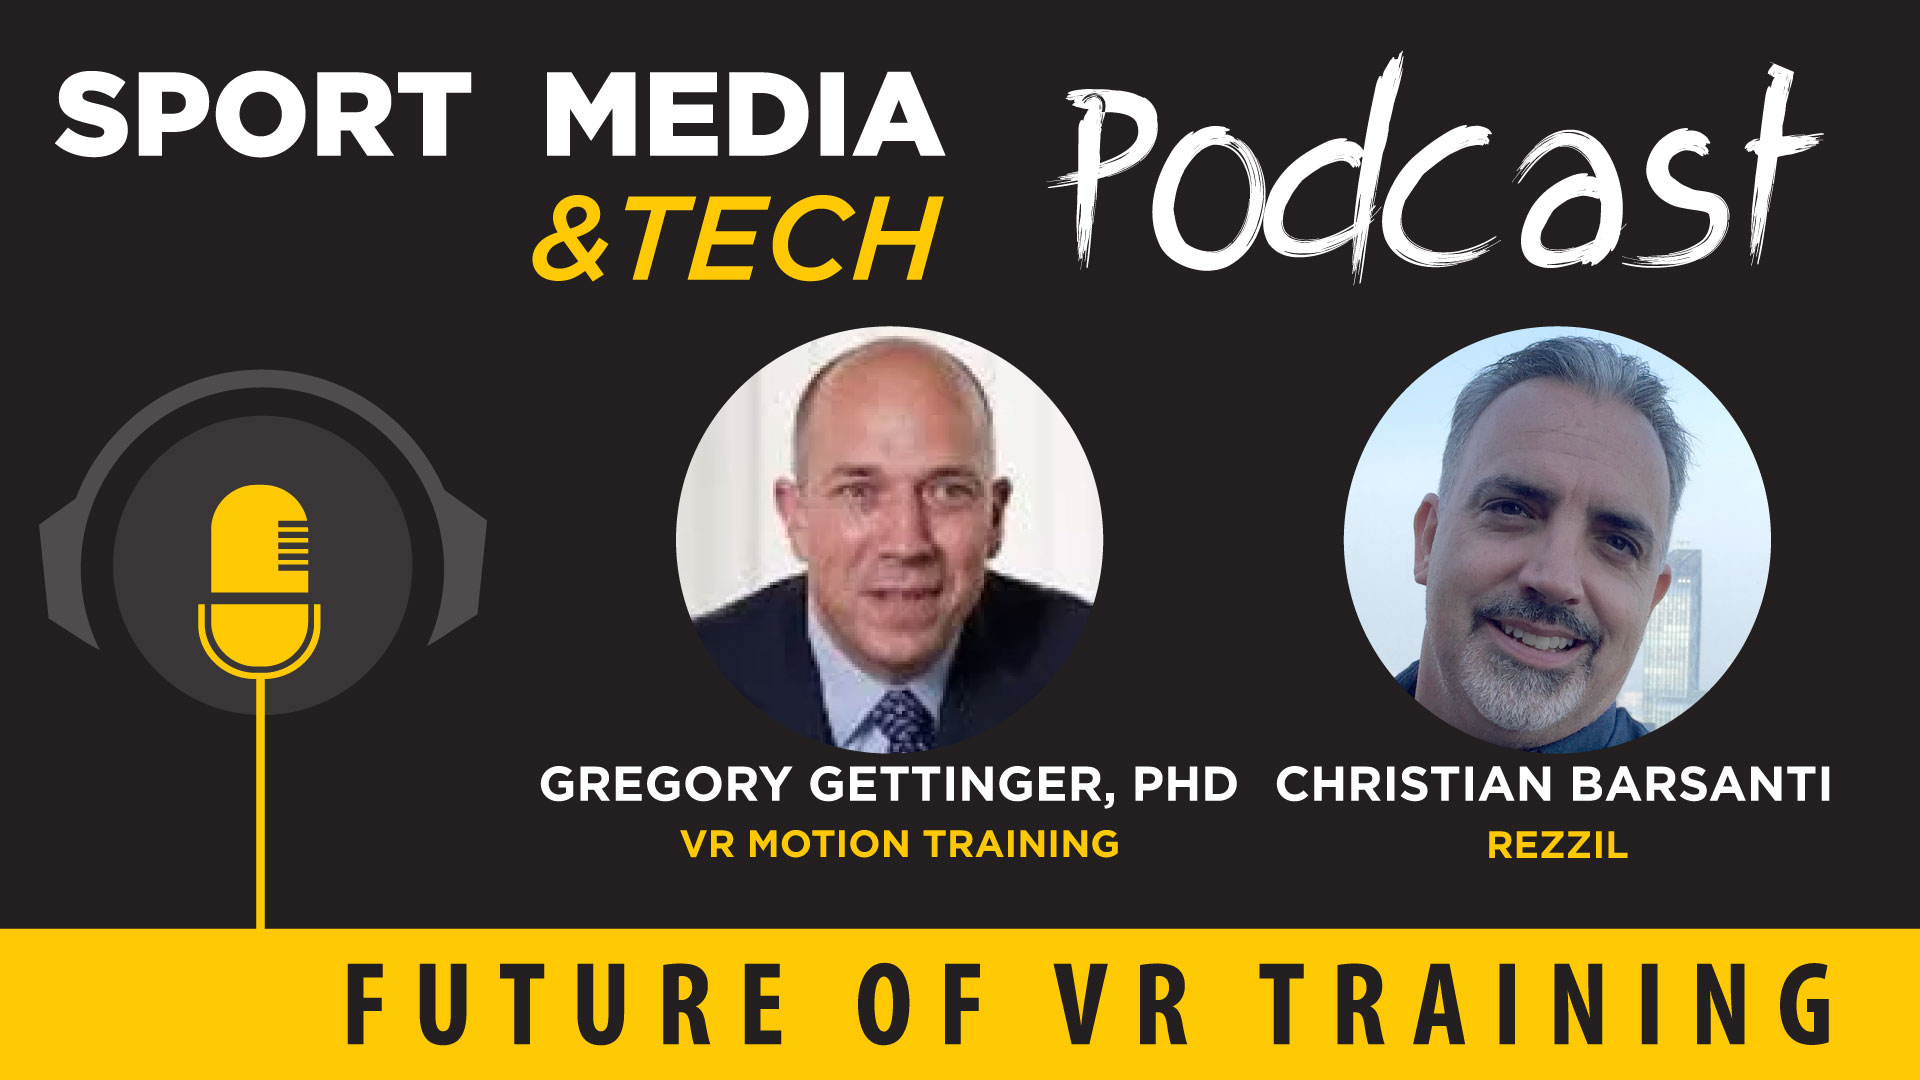 Episode 26: The Future of VR